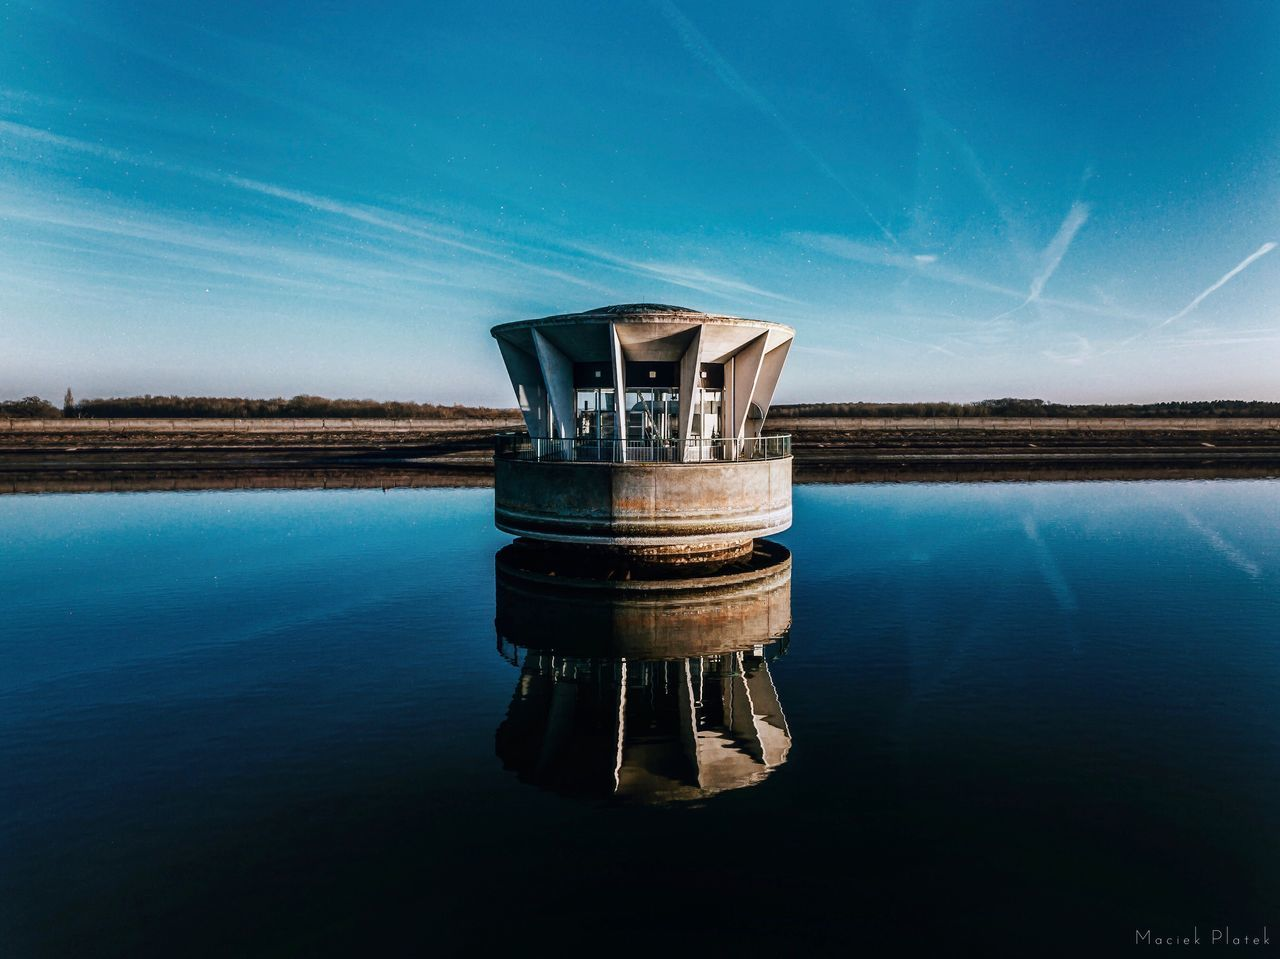 The Jetty Reflection Water No People Sky Outdoors Day Nature Architecture Close-up Drone  Phantom 4 Aerial Epic Aerial Photography Dronephotography Landscape